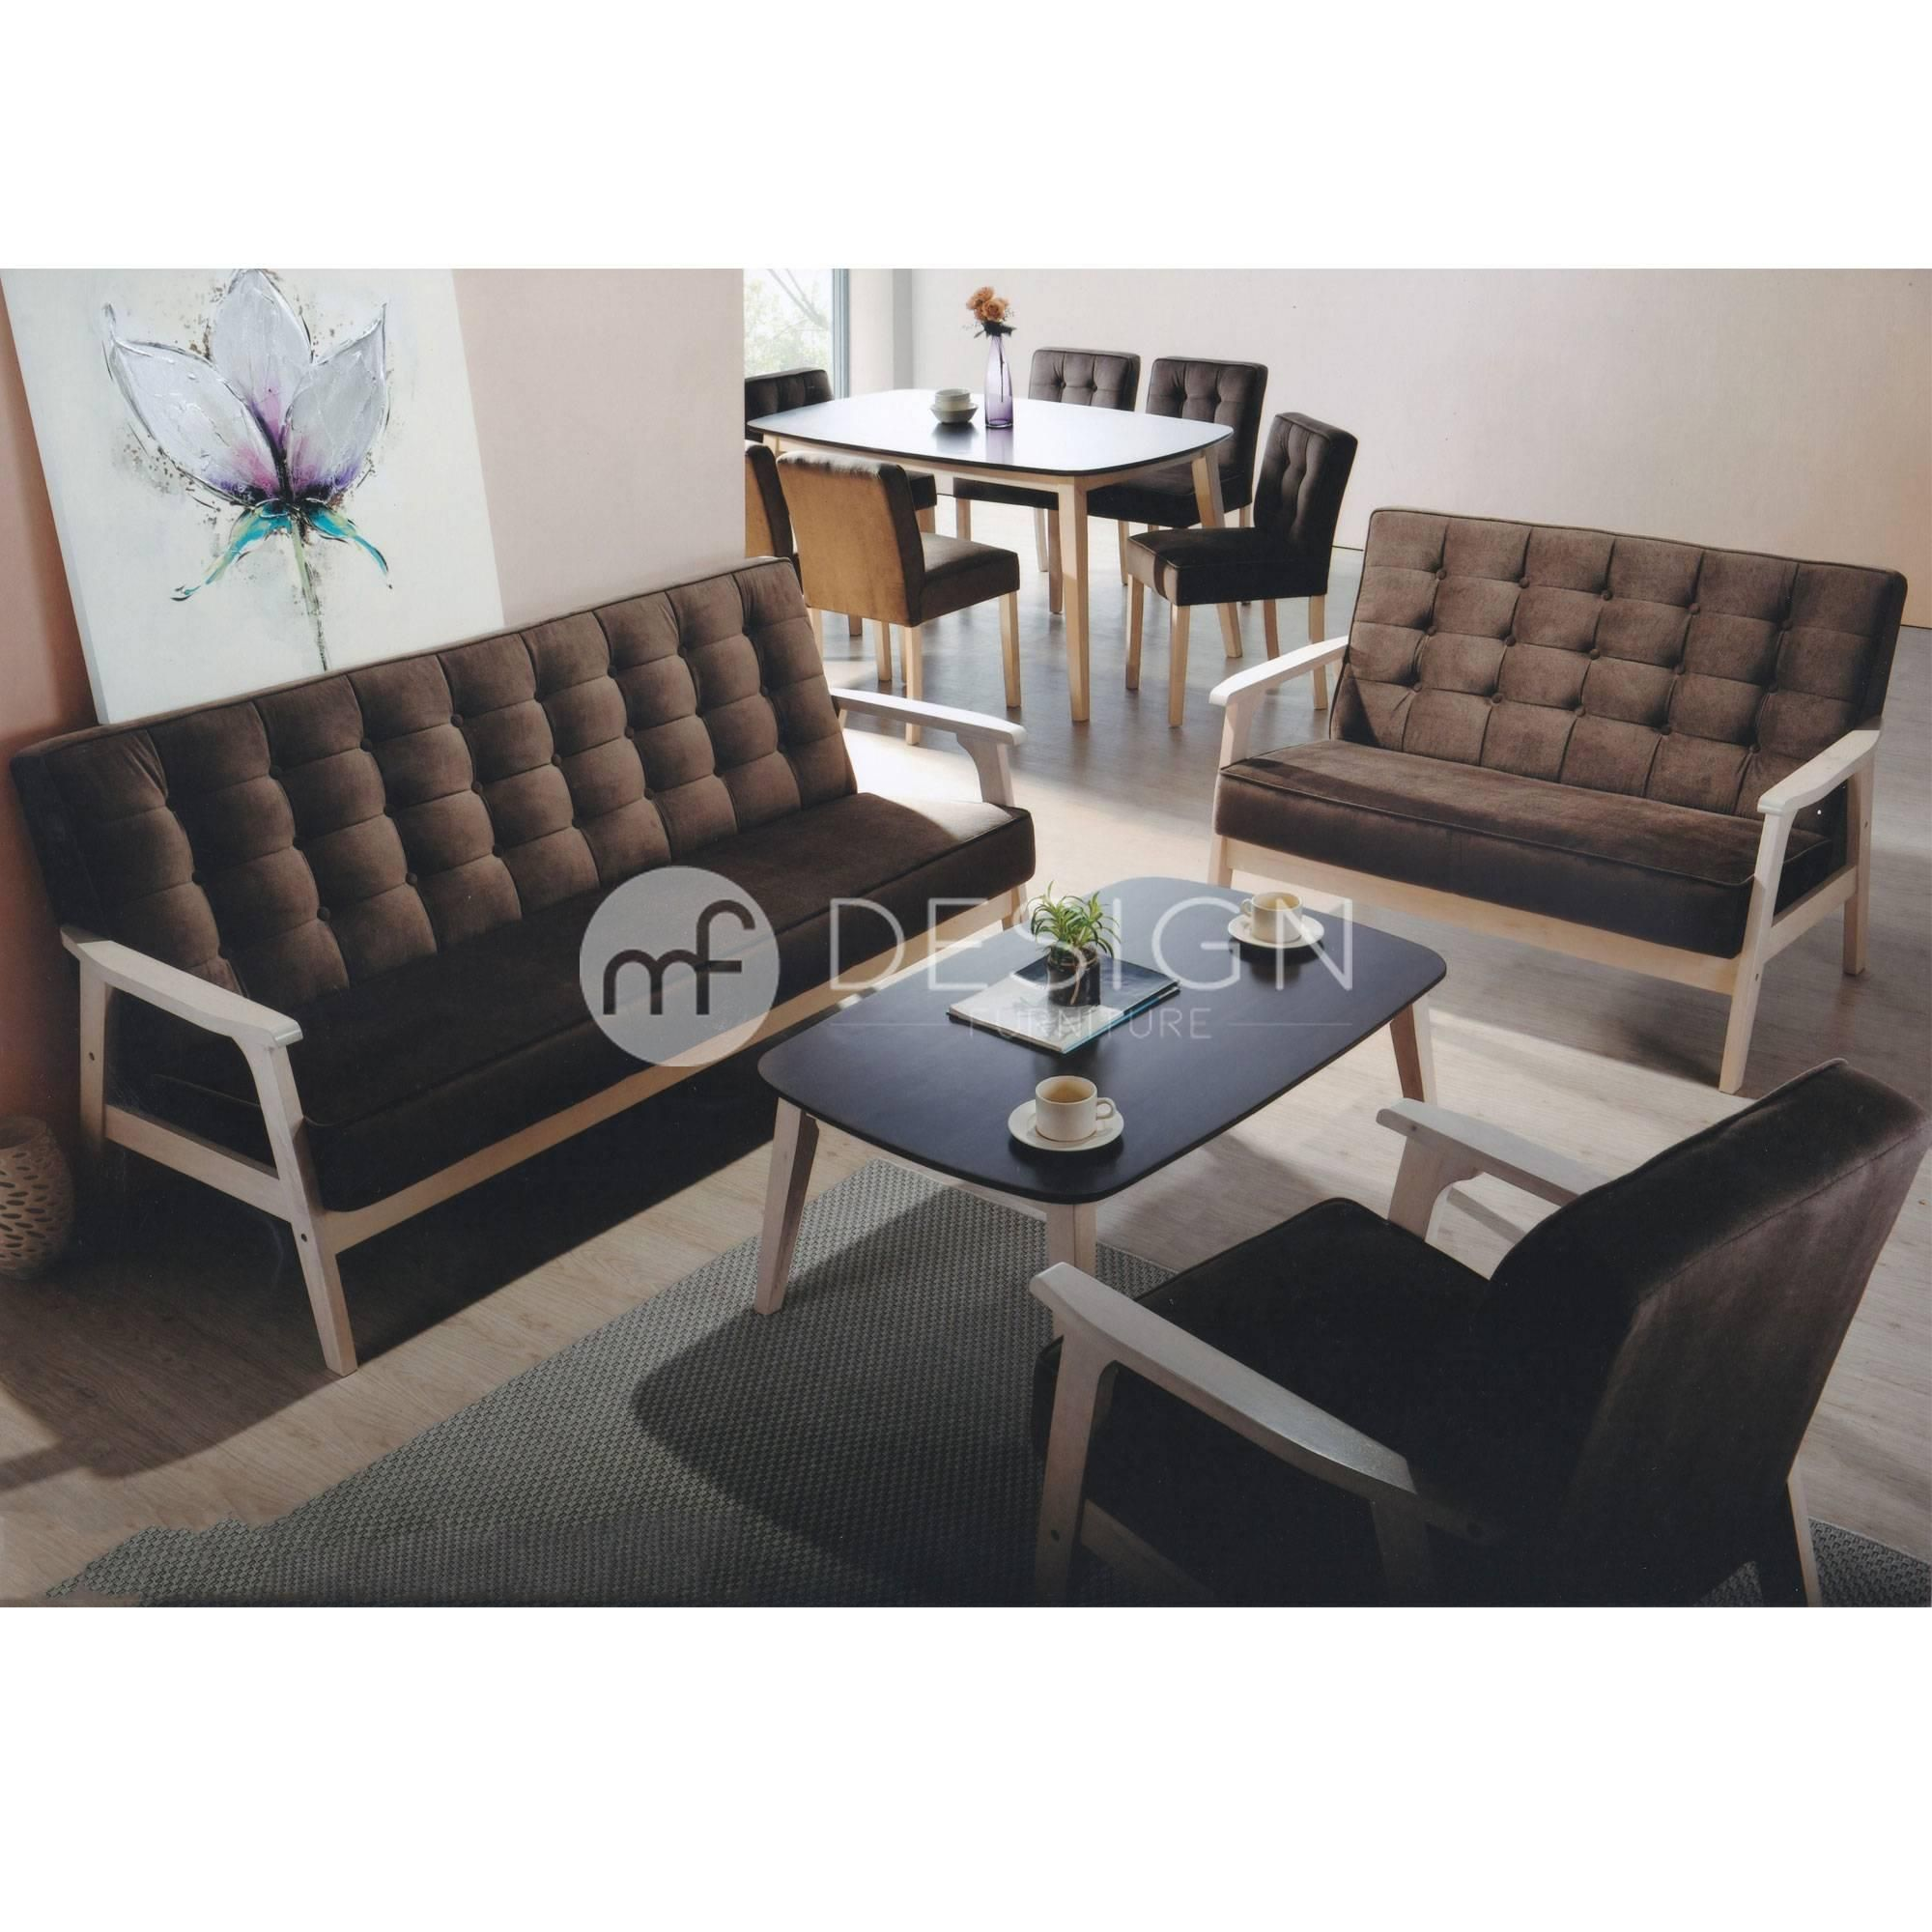 SWEDEN II ANTIQUE ESPRESSO 1 2 3 TABLE SOFA SET